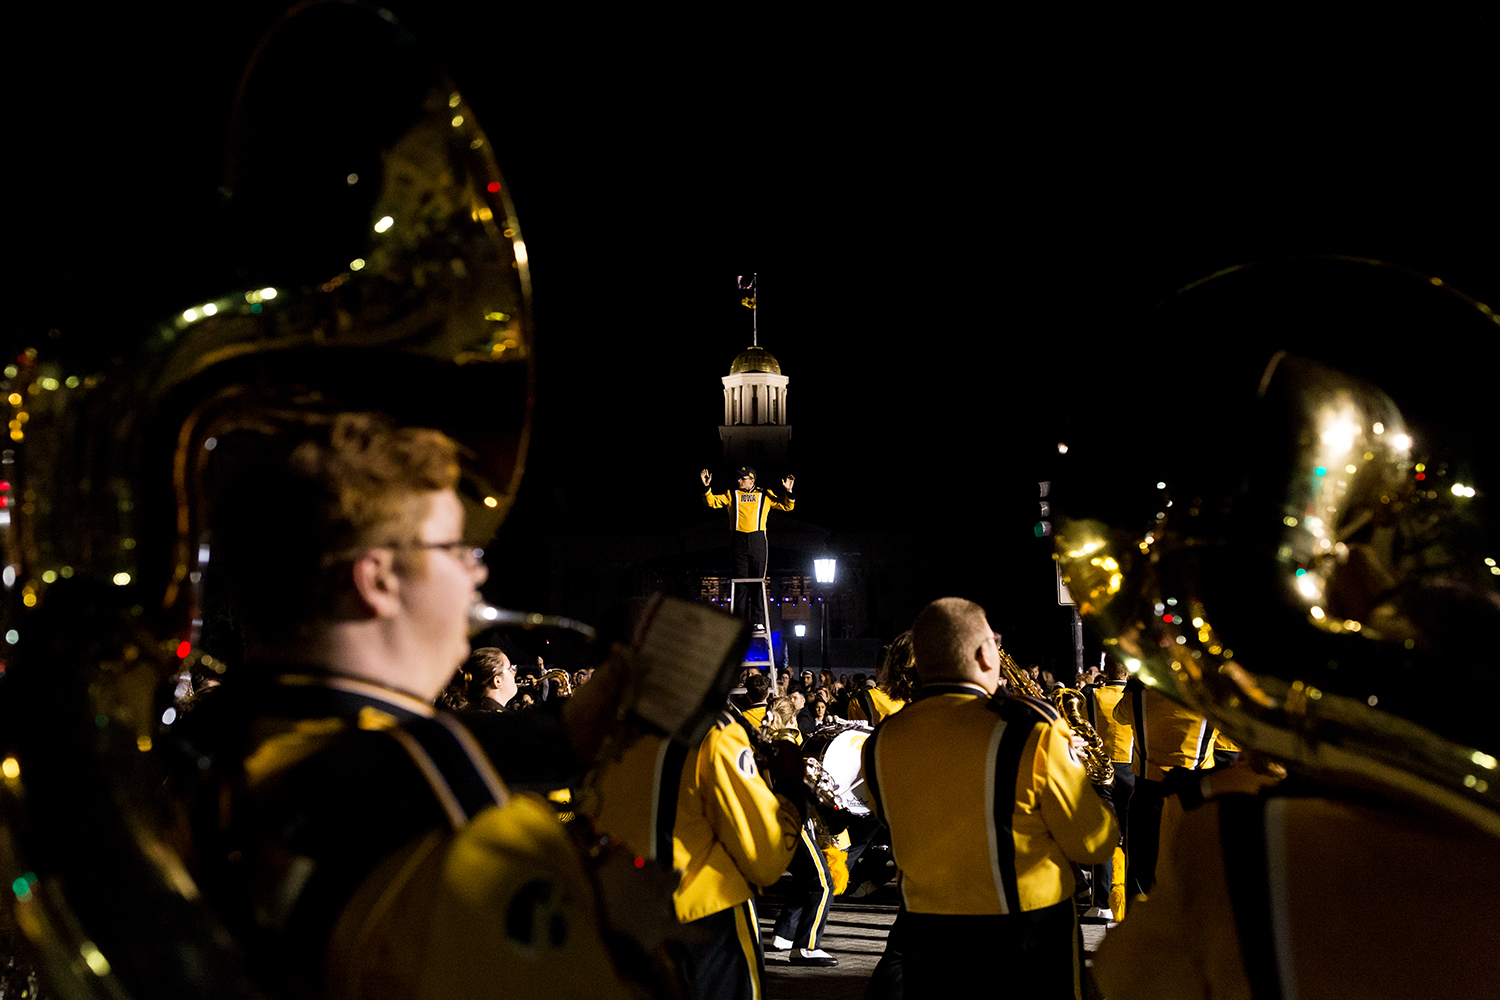 A member of the University of Iowa Marching Band directs the band during the 2018 Homecoming Parade in Iowa City on Friday, Oct. 19, 2019.